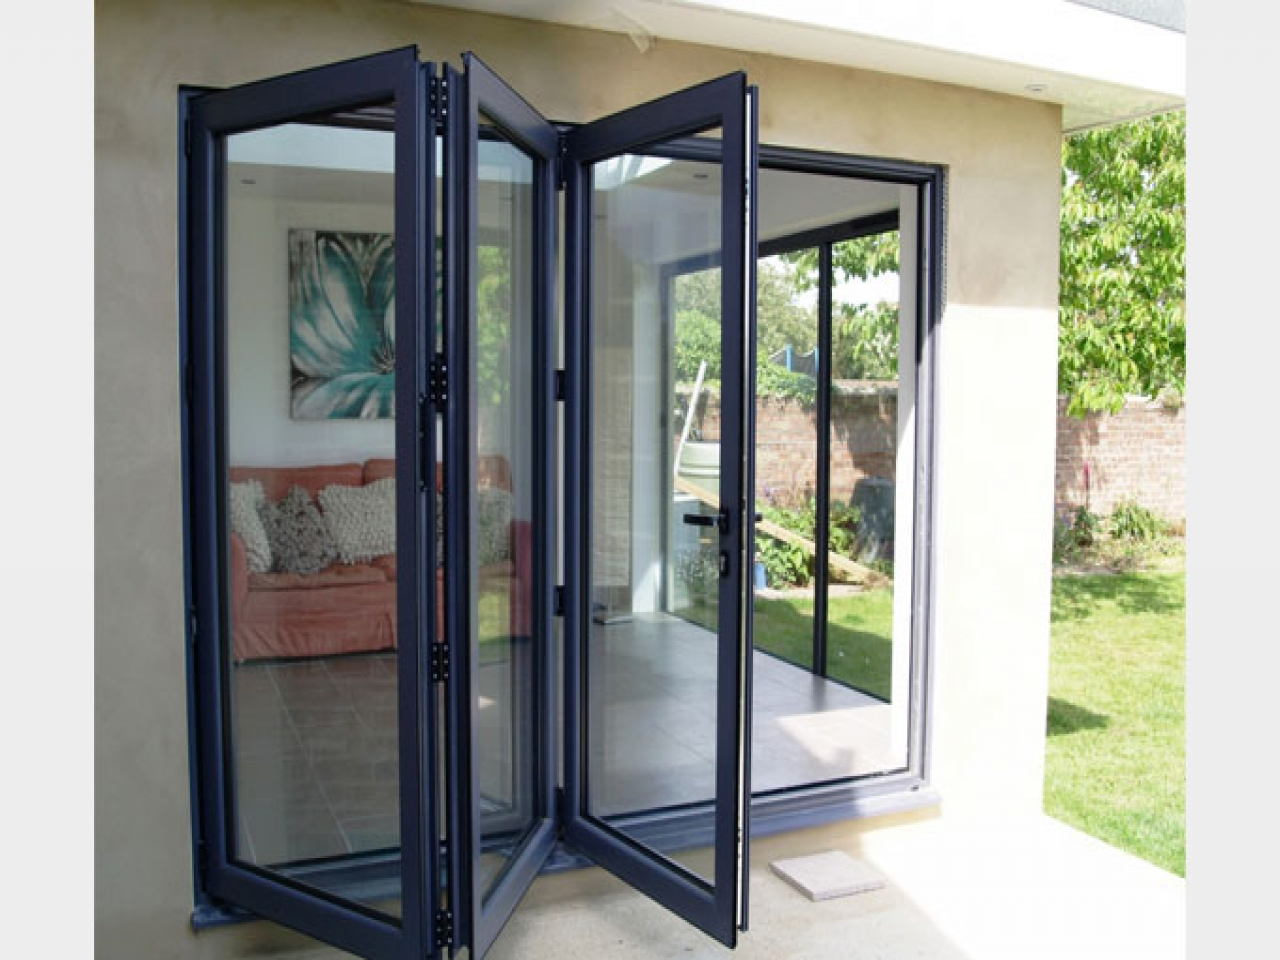 Residential windows doors south coast windows doors for Sliding patio windows